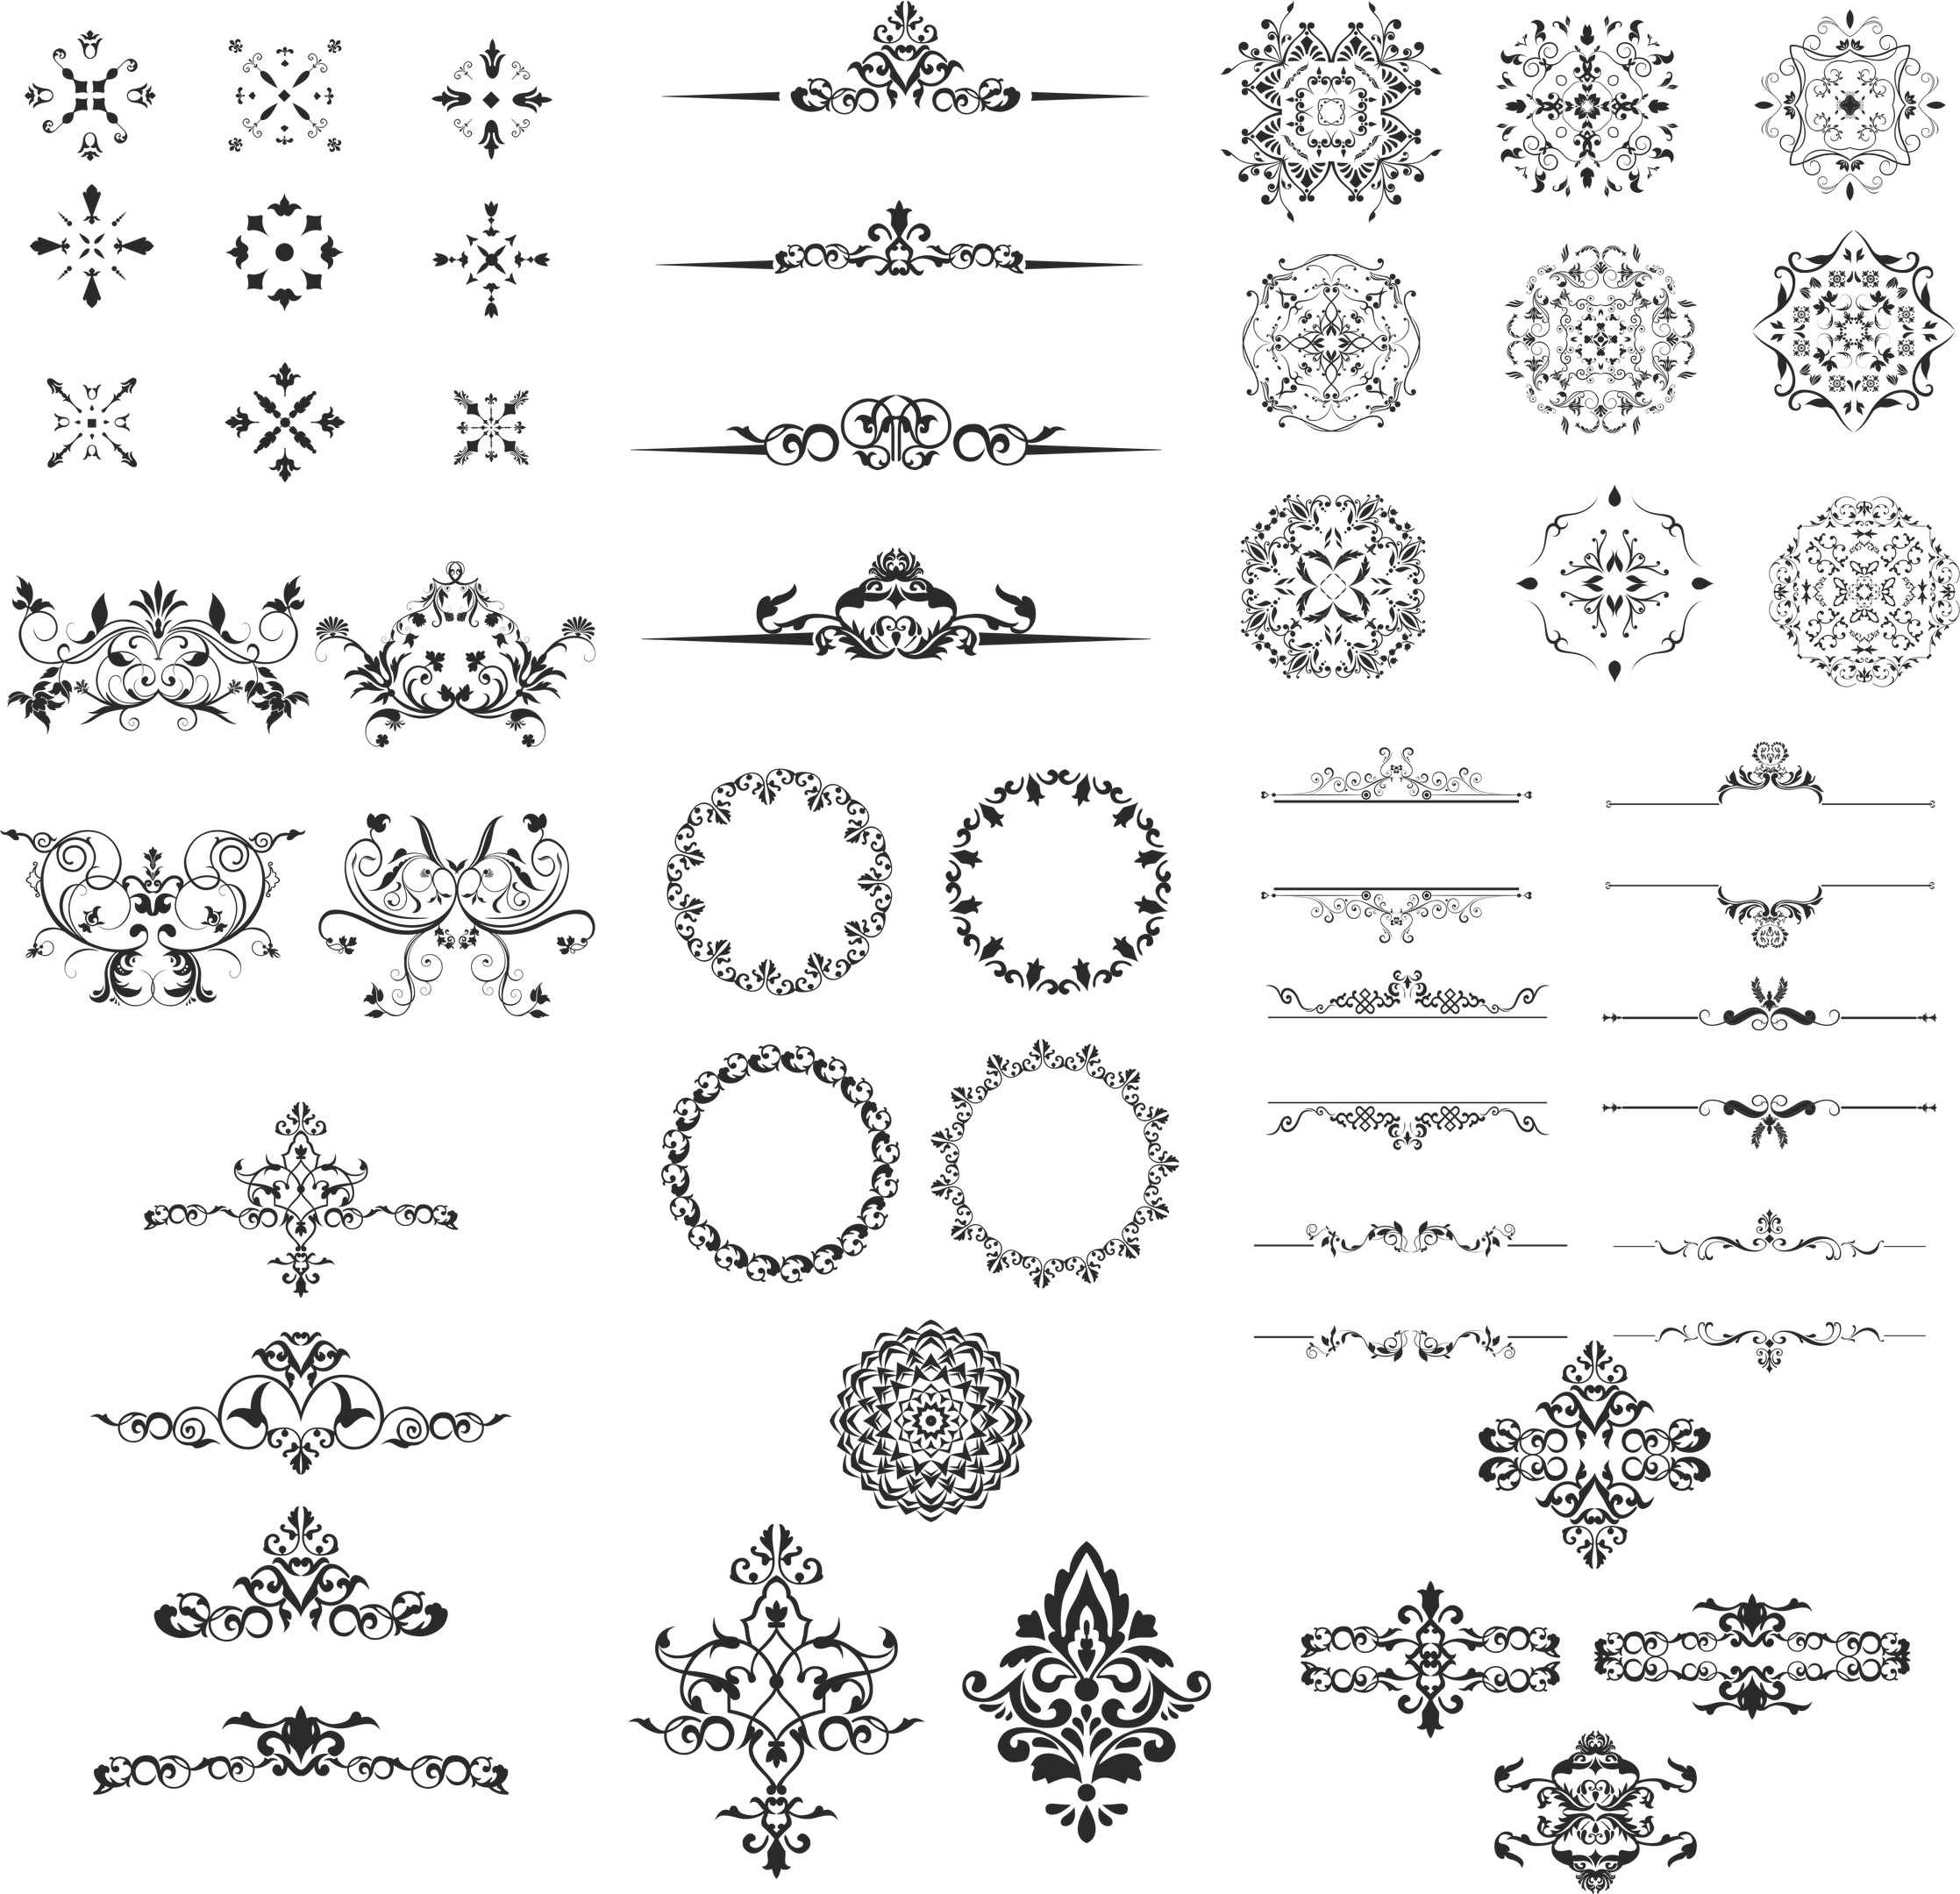 Ornament Design Kit Free Vector cdr Download - 3axis co